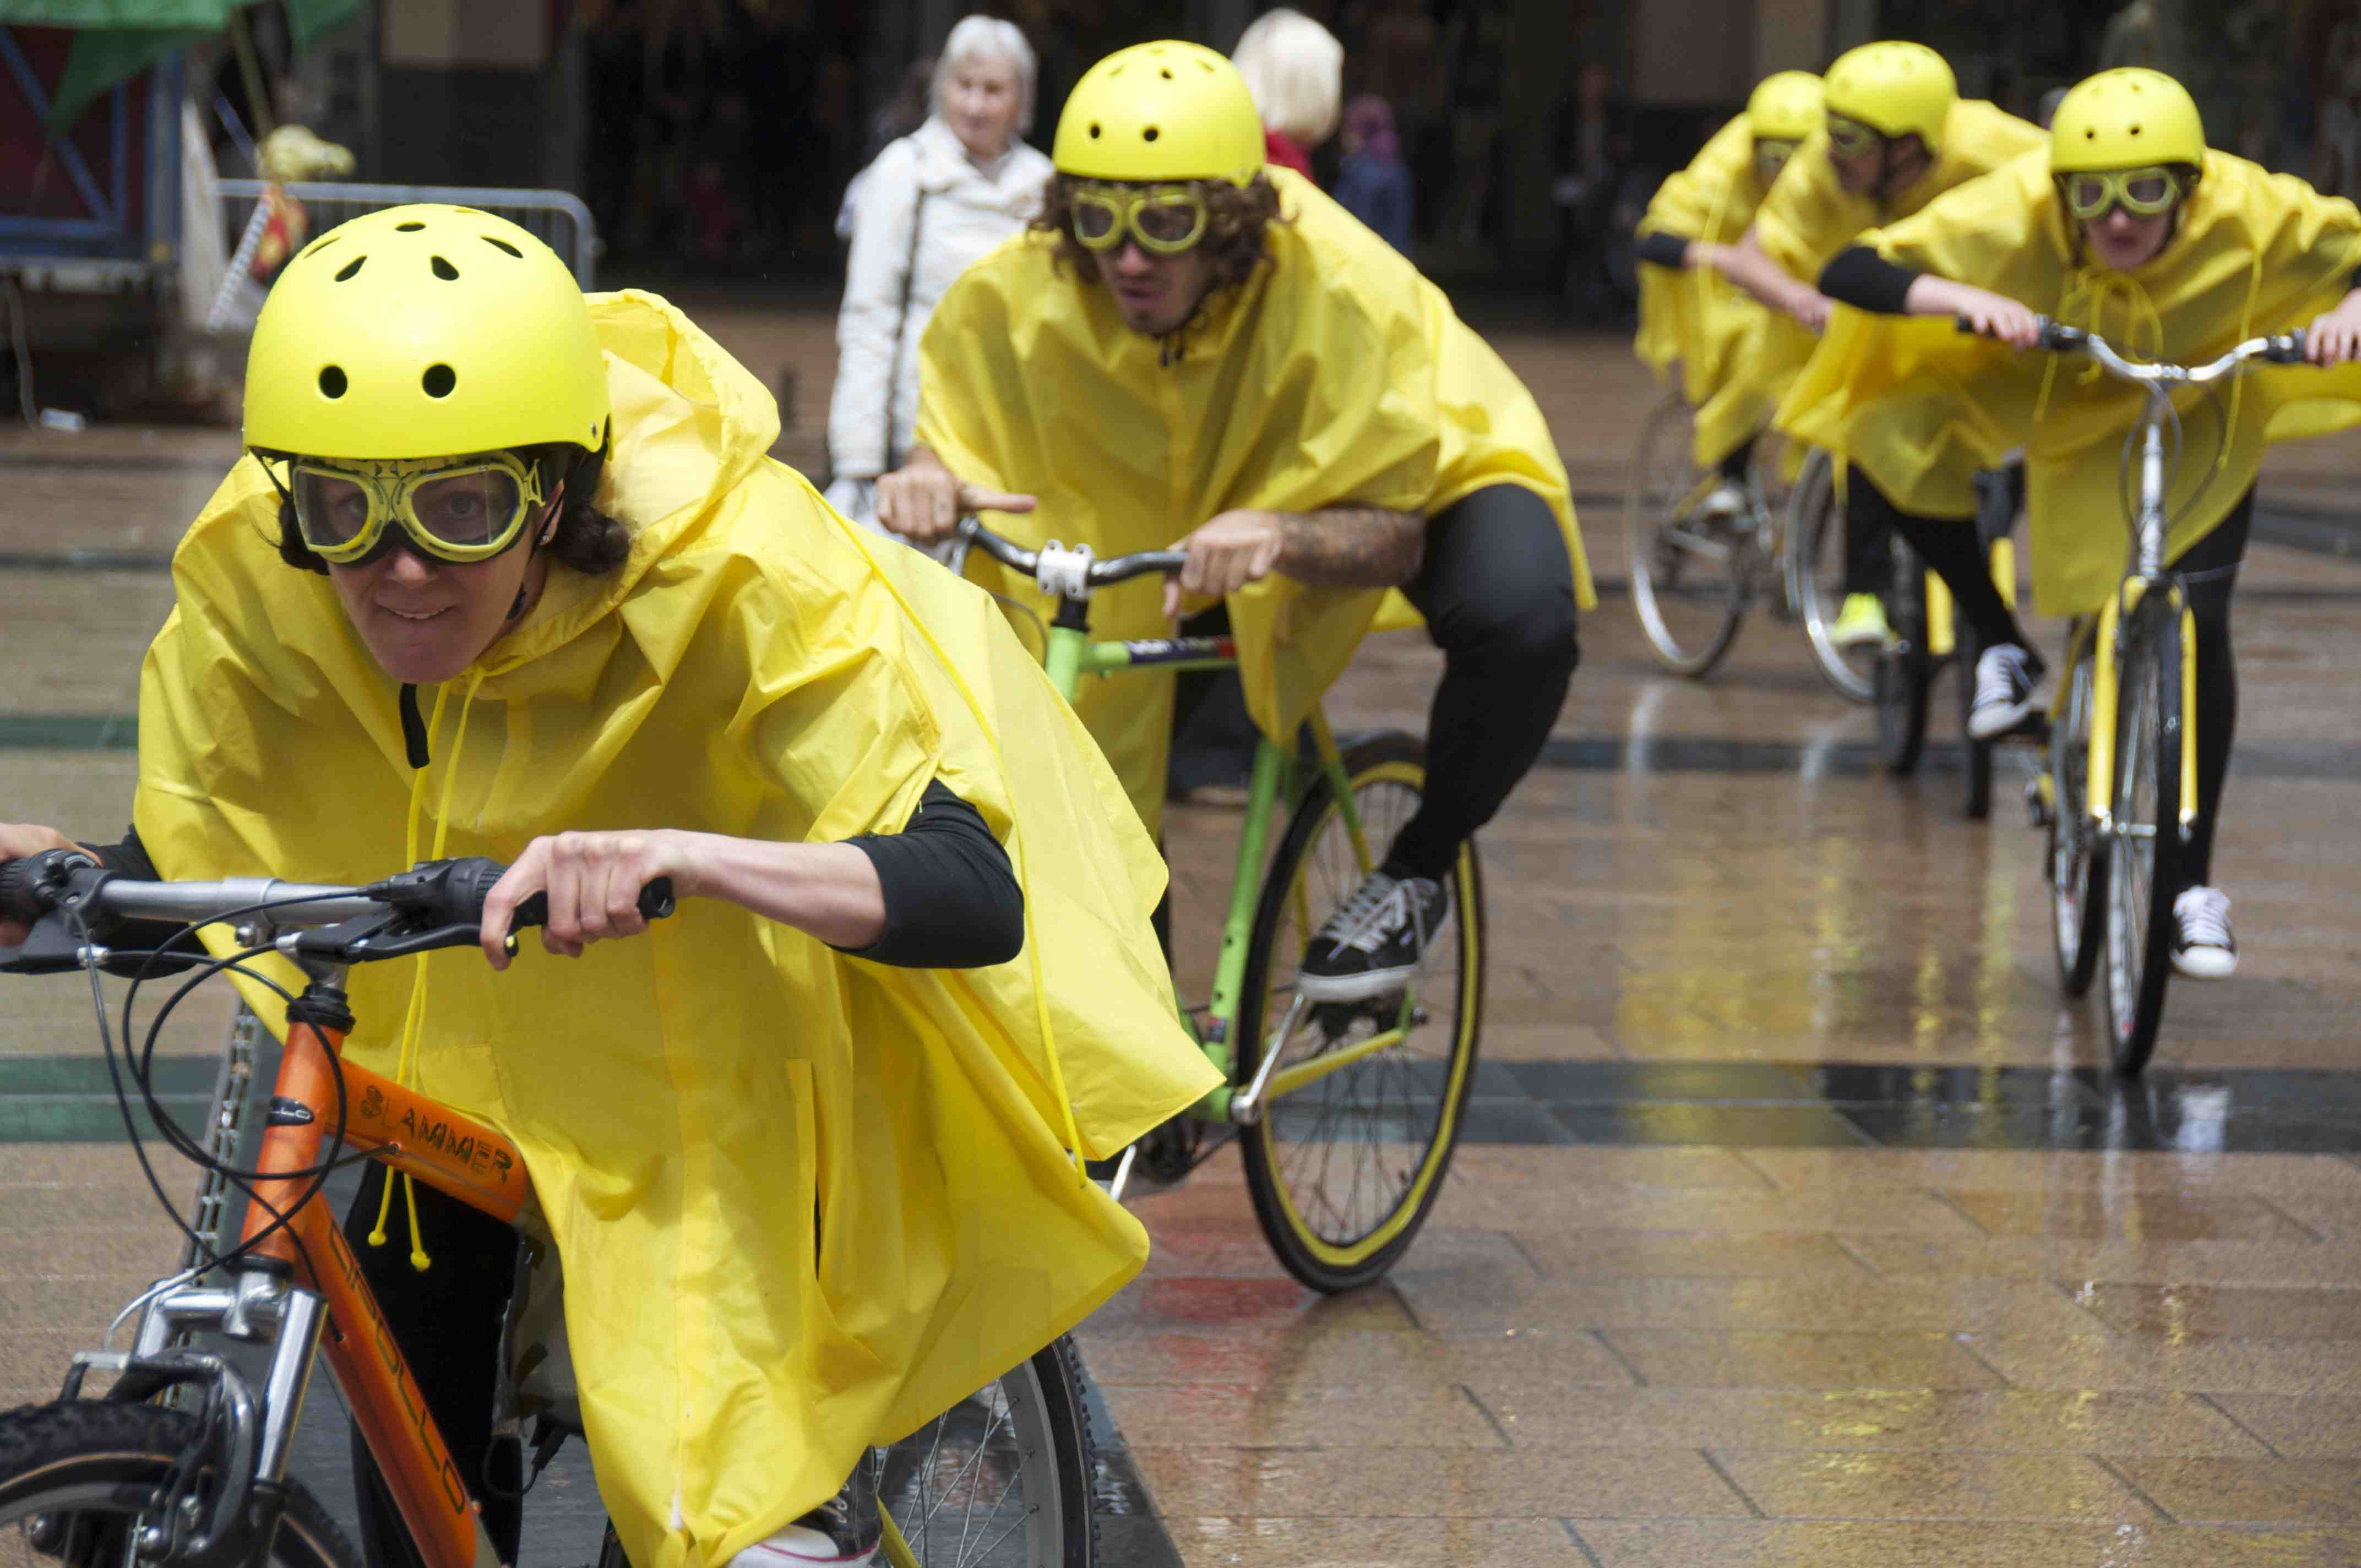 five yellow clad cyclings (helment, rain capes & goggles) lean over their handlebars and cycle towards the camera